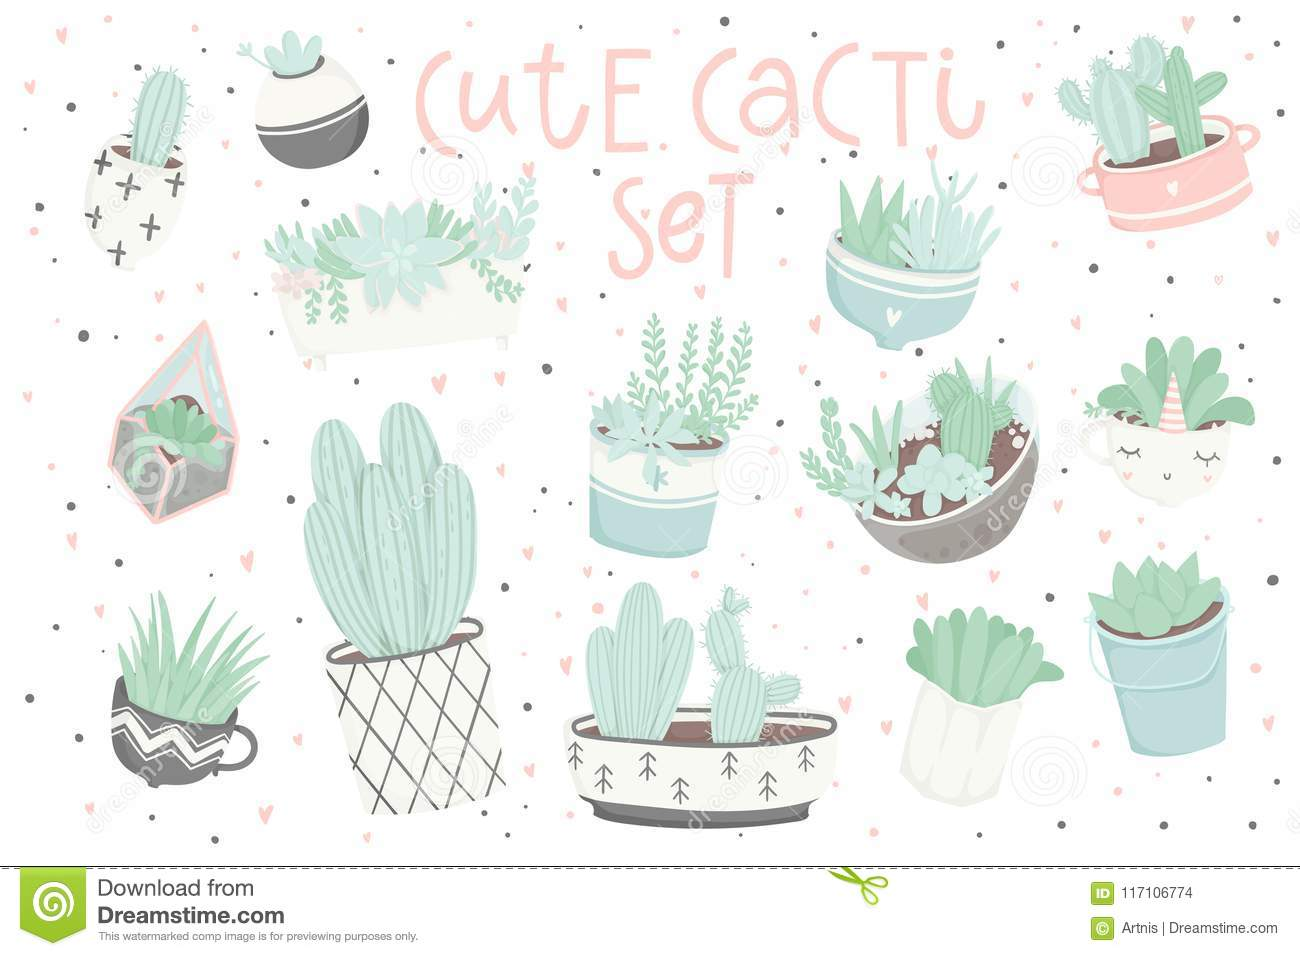 Cute Summer Sticker Set With Cacti And Succulents Stock Vector Illustration Of Home Card 117106774